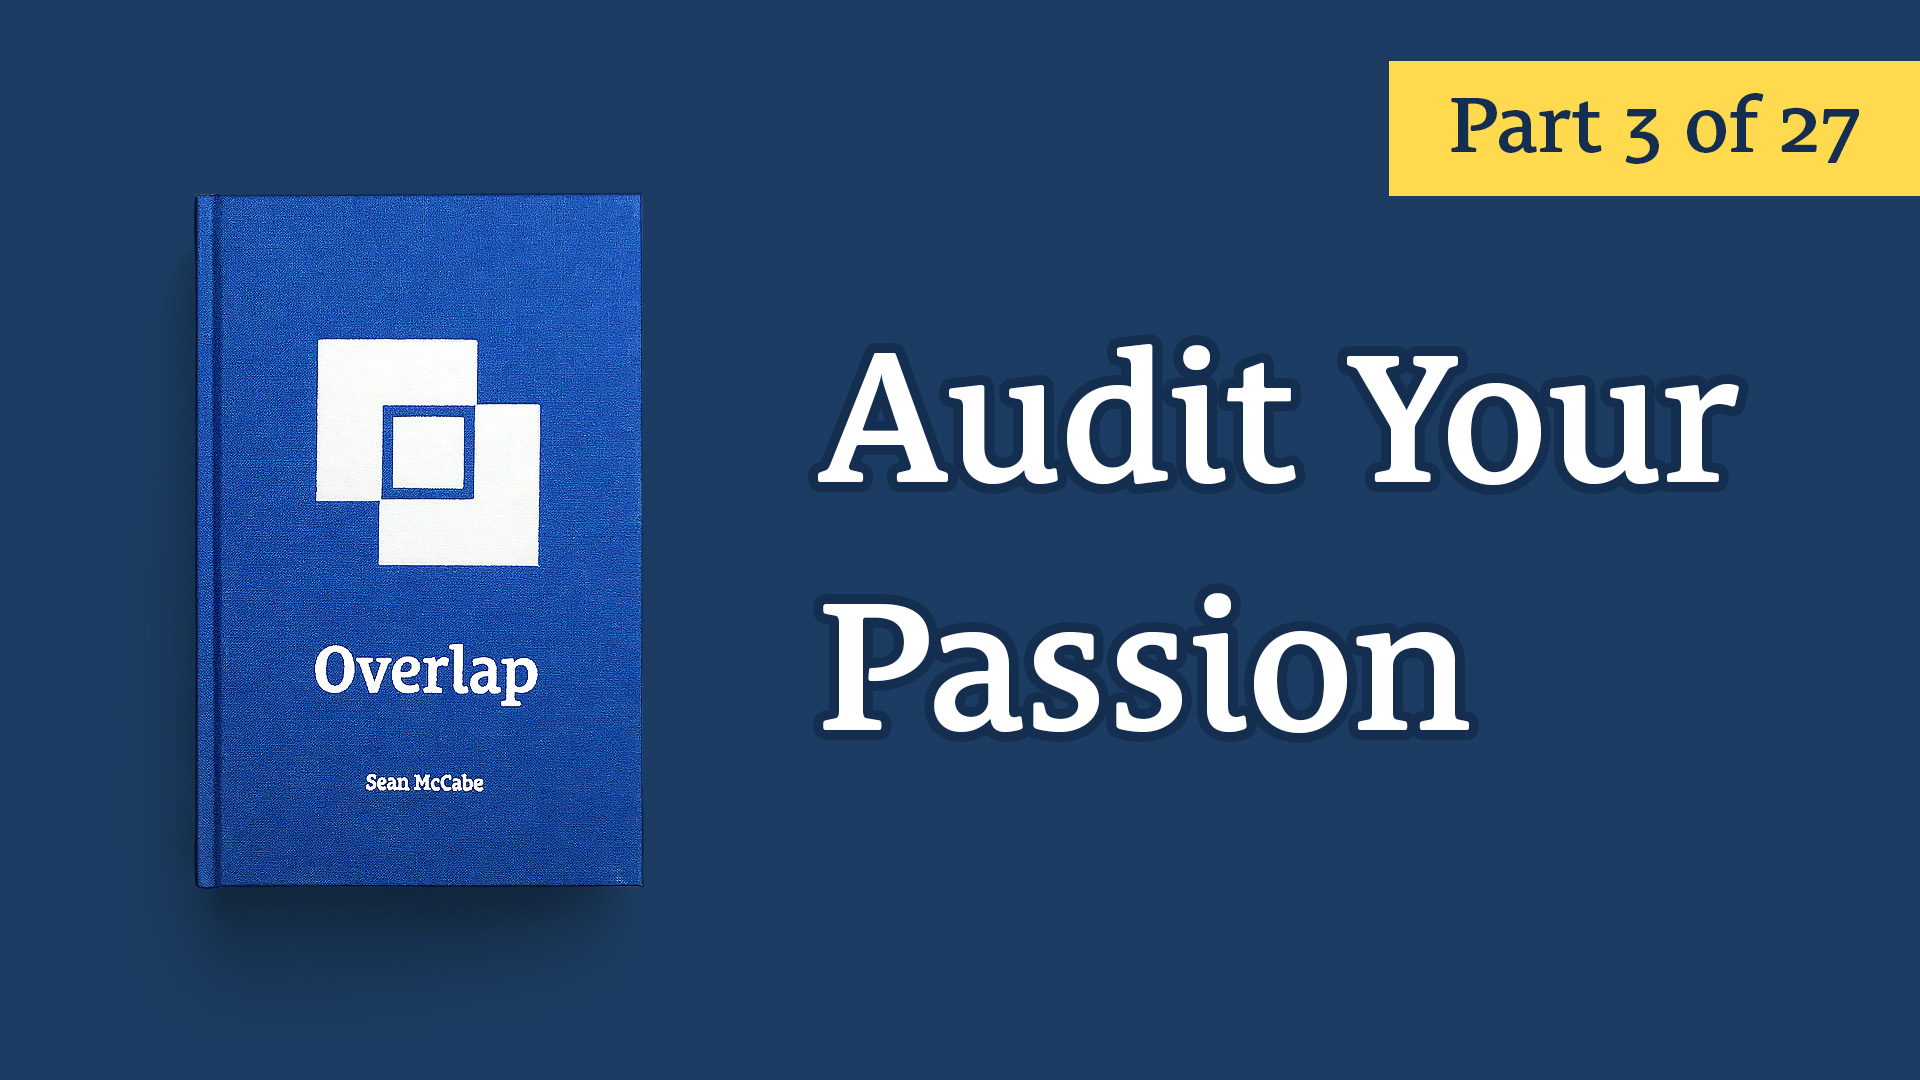 Audit Your Passion - Overlap #3